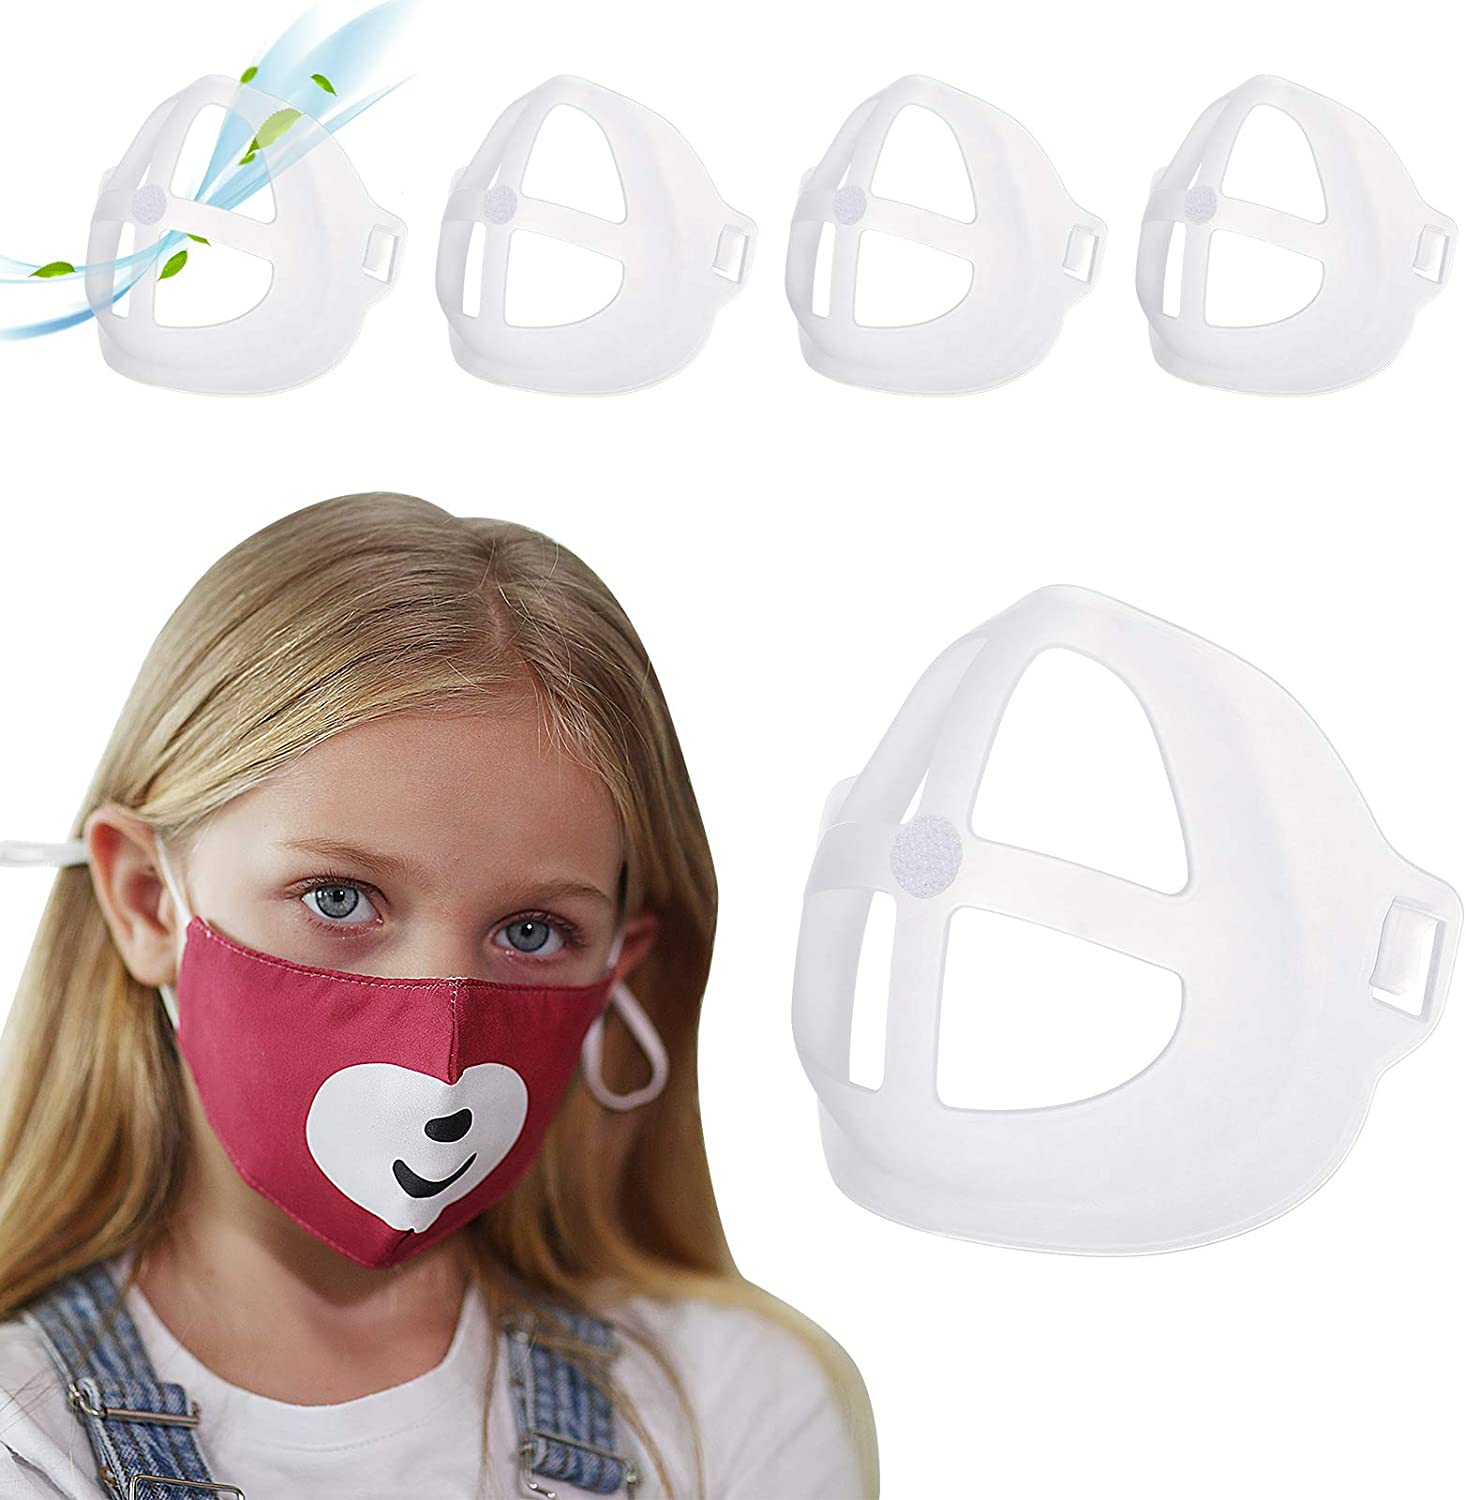 3D Mask Bracket for Kids - 5 Pack Face Mask Inner Support Frame with Hook & Loop, More Space for Comfortable Breathing Protect Lipstick Washable Reusable